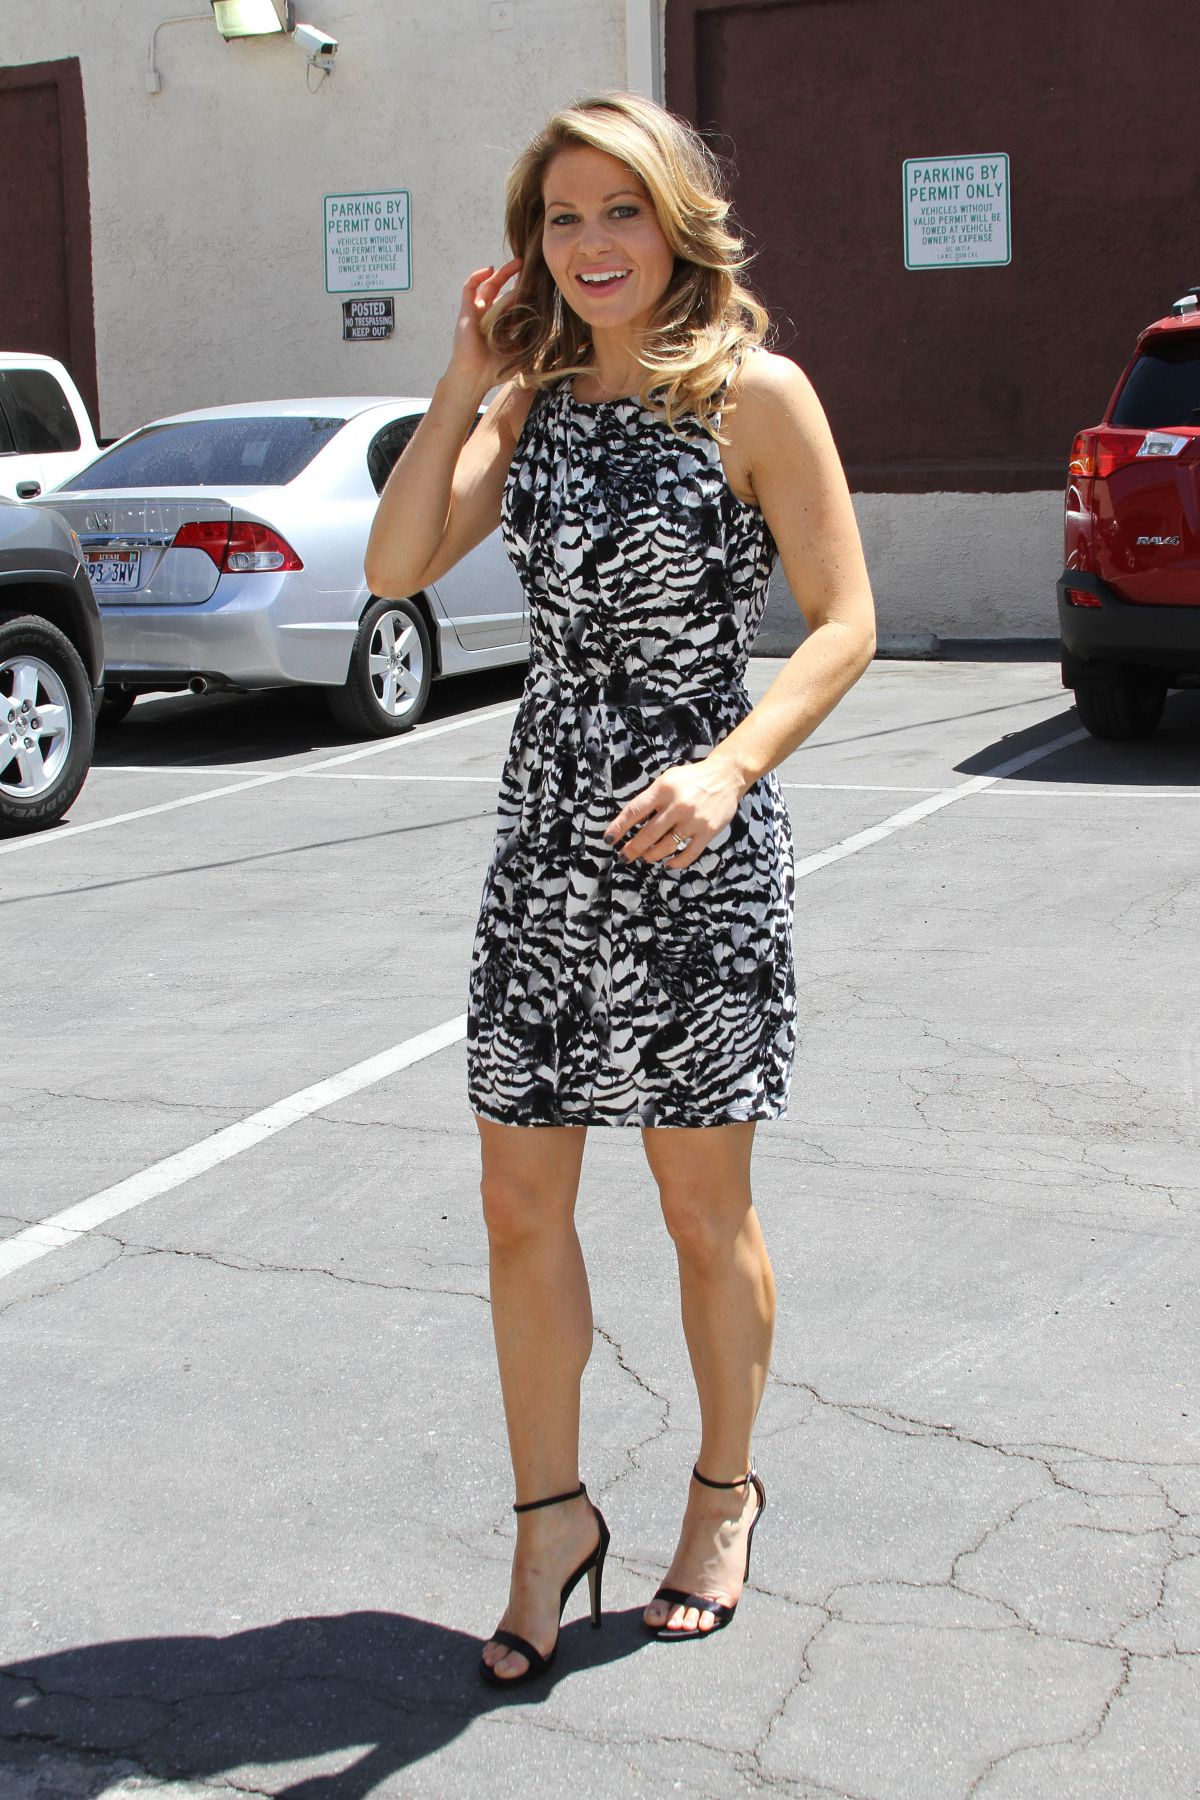 Candace Cameron Bure Wikipedia >> Candace Cameron Bure (FULL HOUSE) | Ed B on Sports